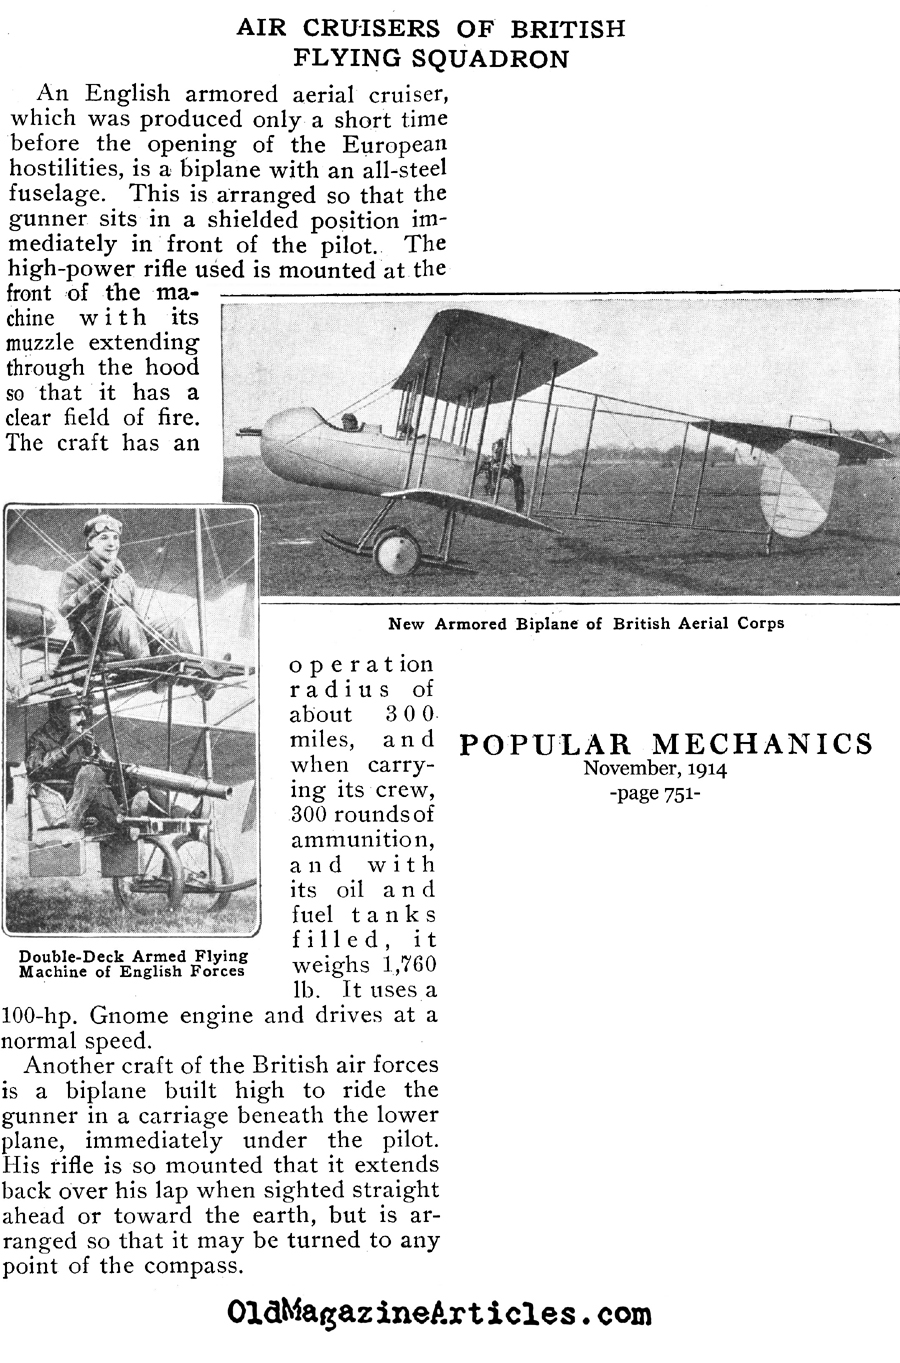 Air Cruisers of the British Flying Squadron  (Popular Mechanics, 1914)